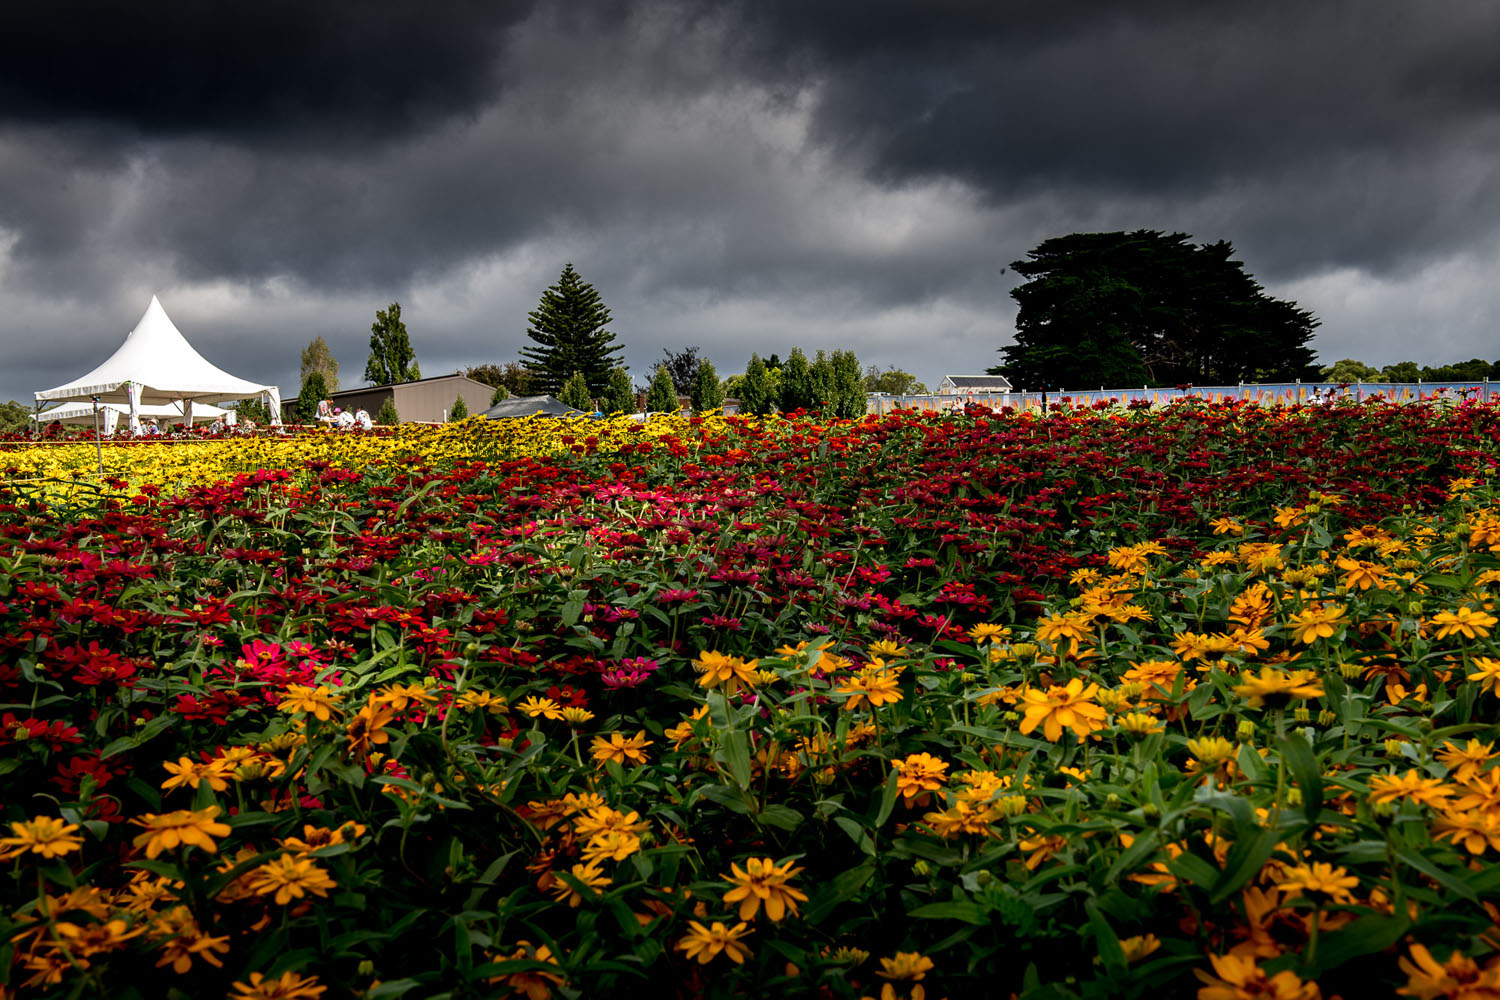 flower garden - time-lapse photography